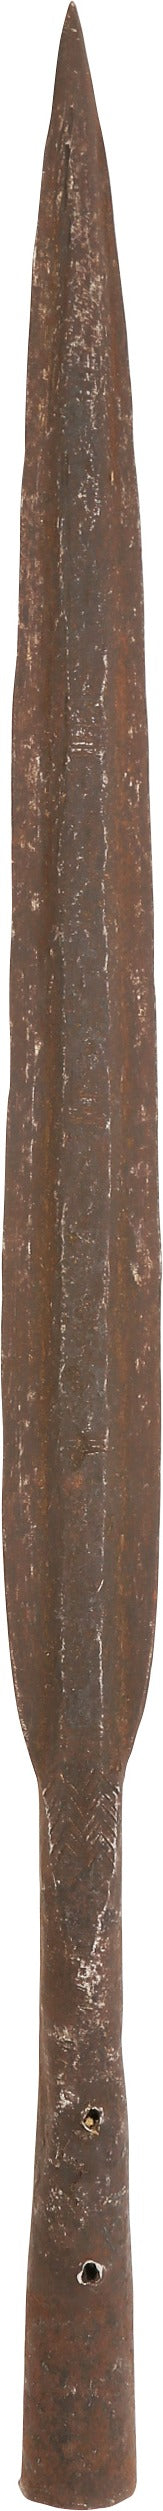 CONGOLESE SLAVER'S SPEAR, MID 19TH CENTURY